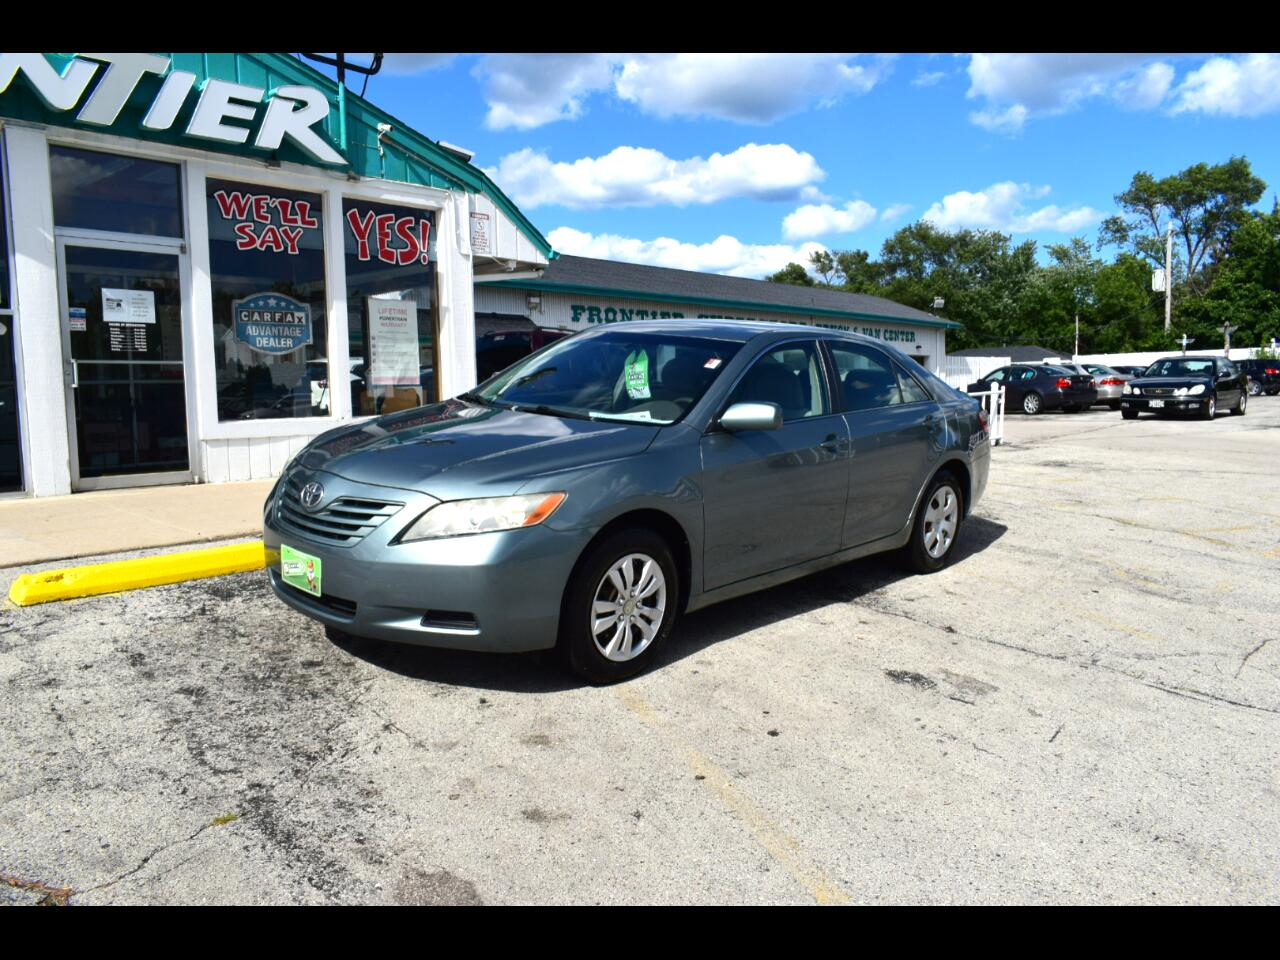 Toyota Camry 4dr Sdn I4 Auto XLE (Natl) 2007